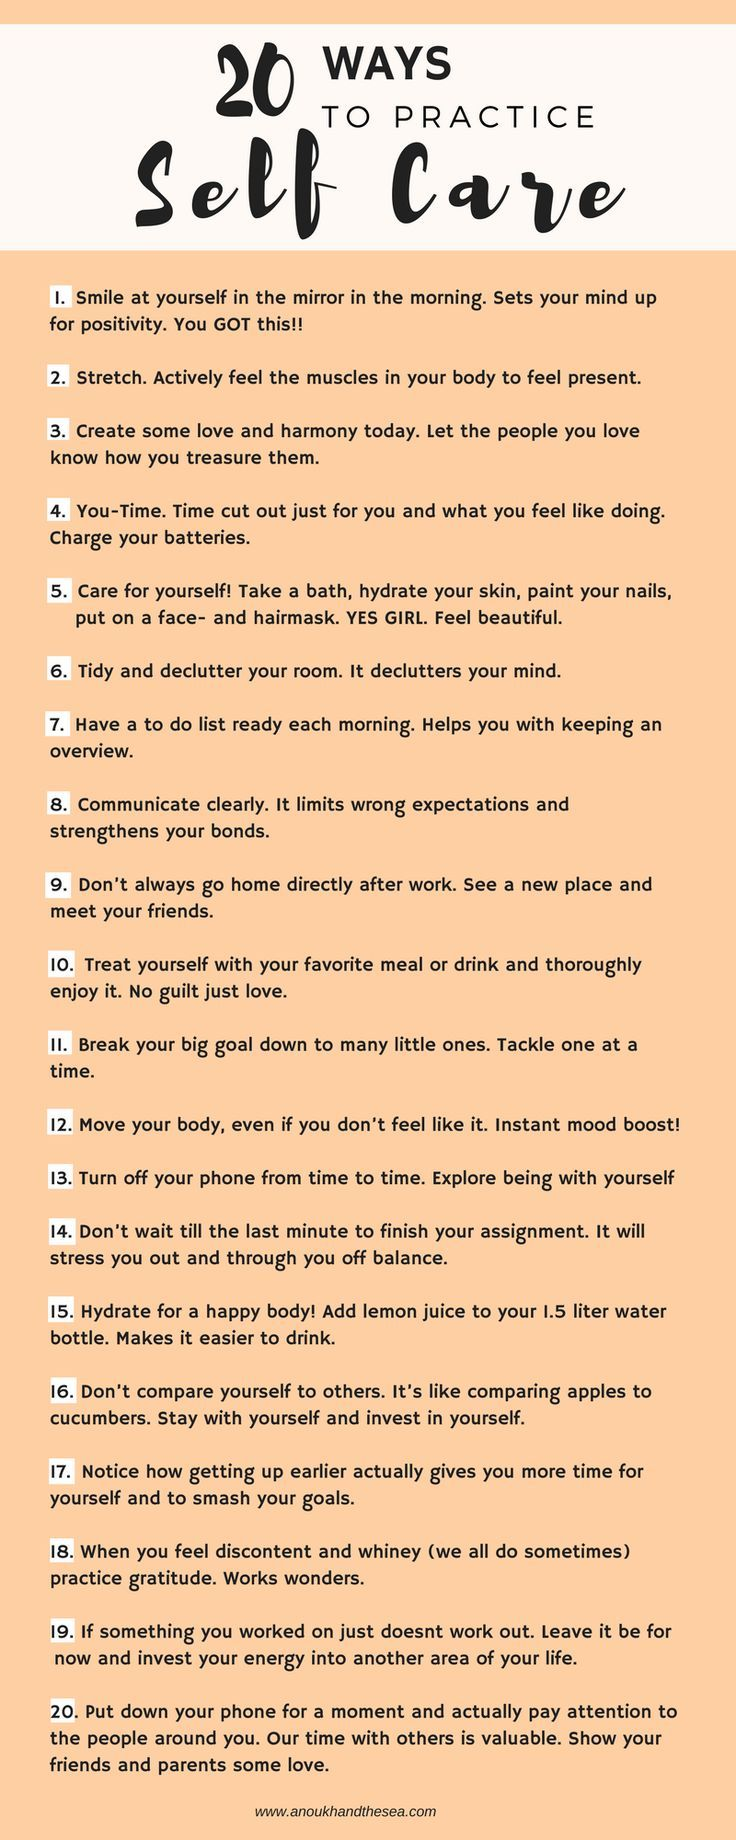 Tips to encourage a positive mindset and for self care, too! (You can't pour from an empty vessel)